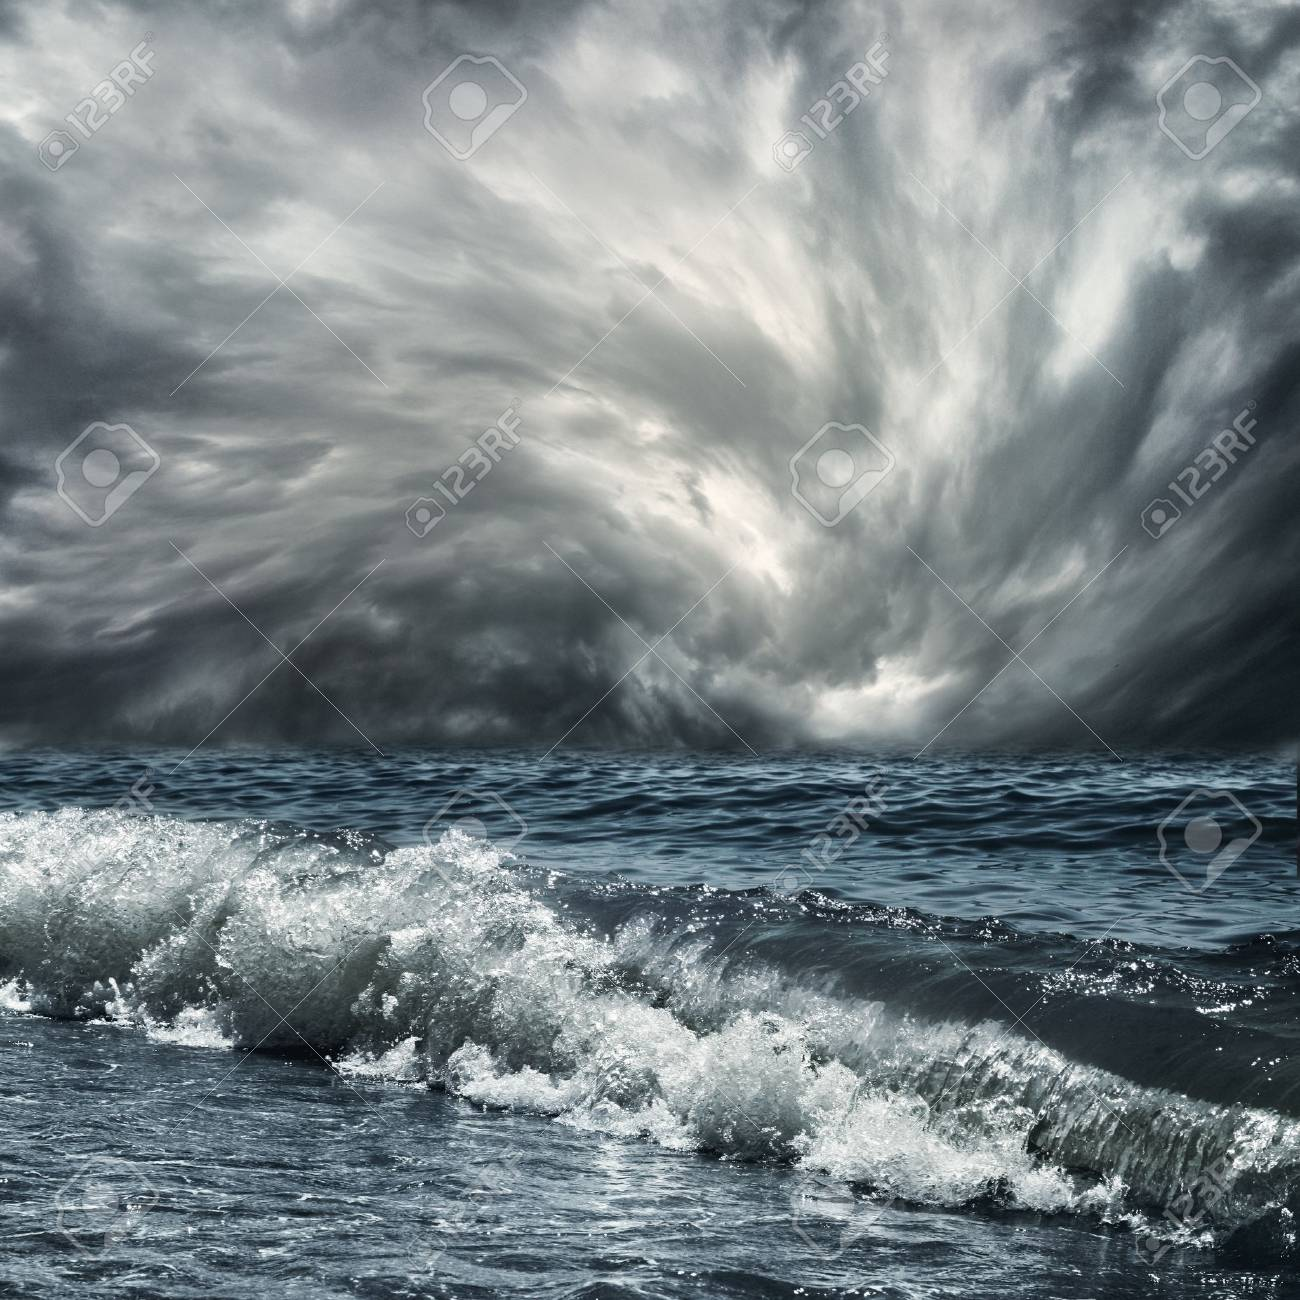 a large wave at sea Stock Photo - 10785703